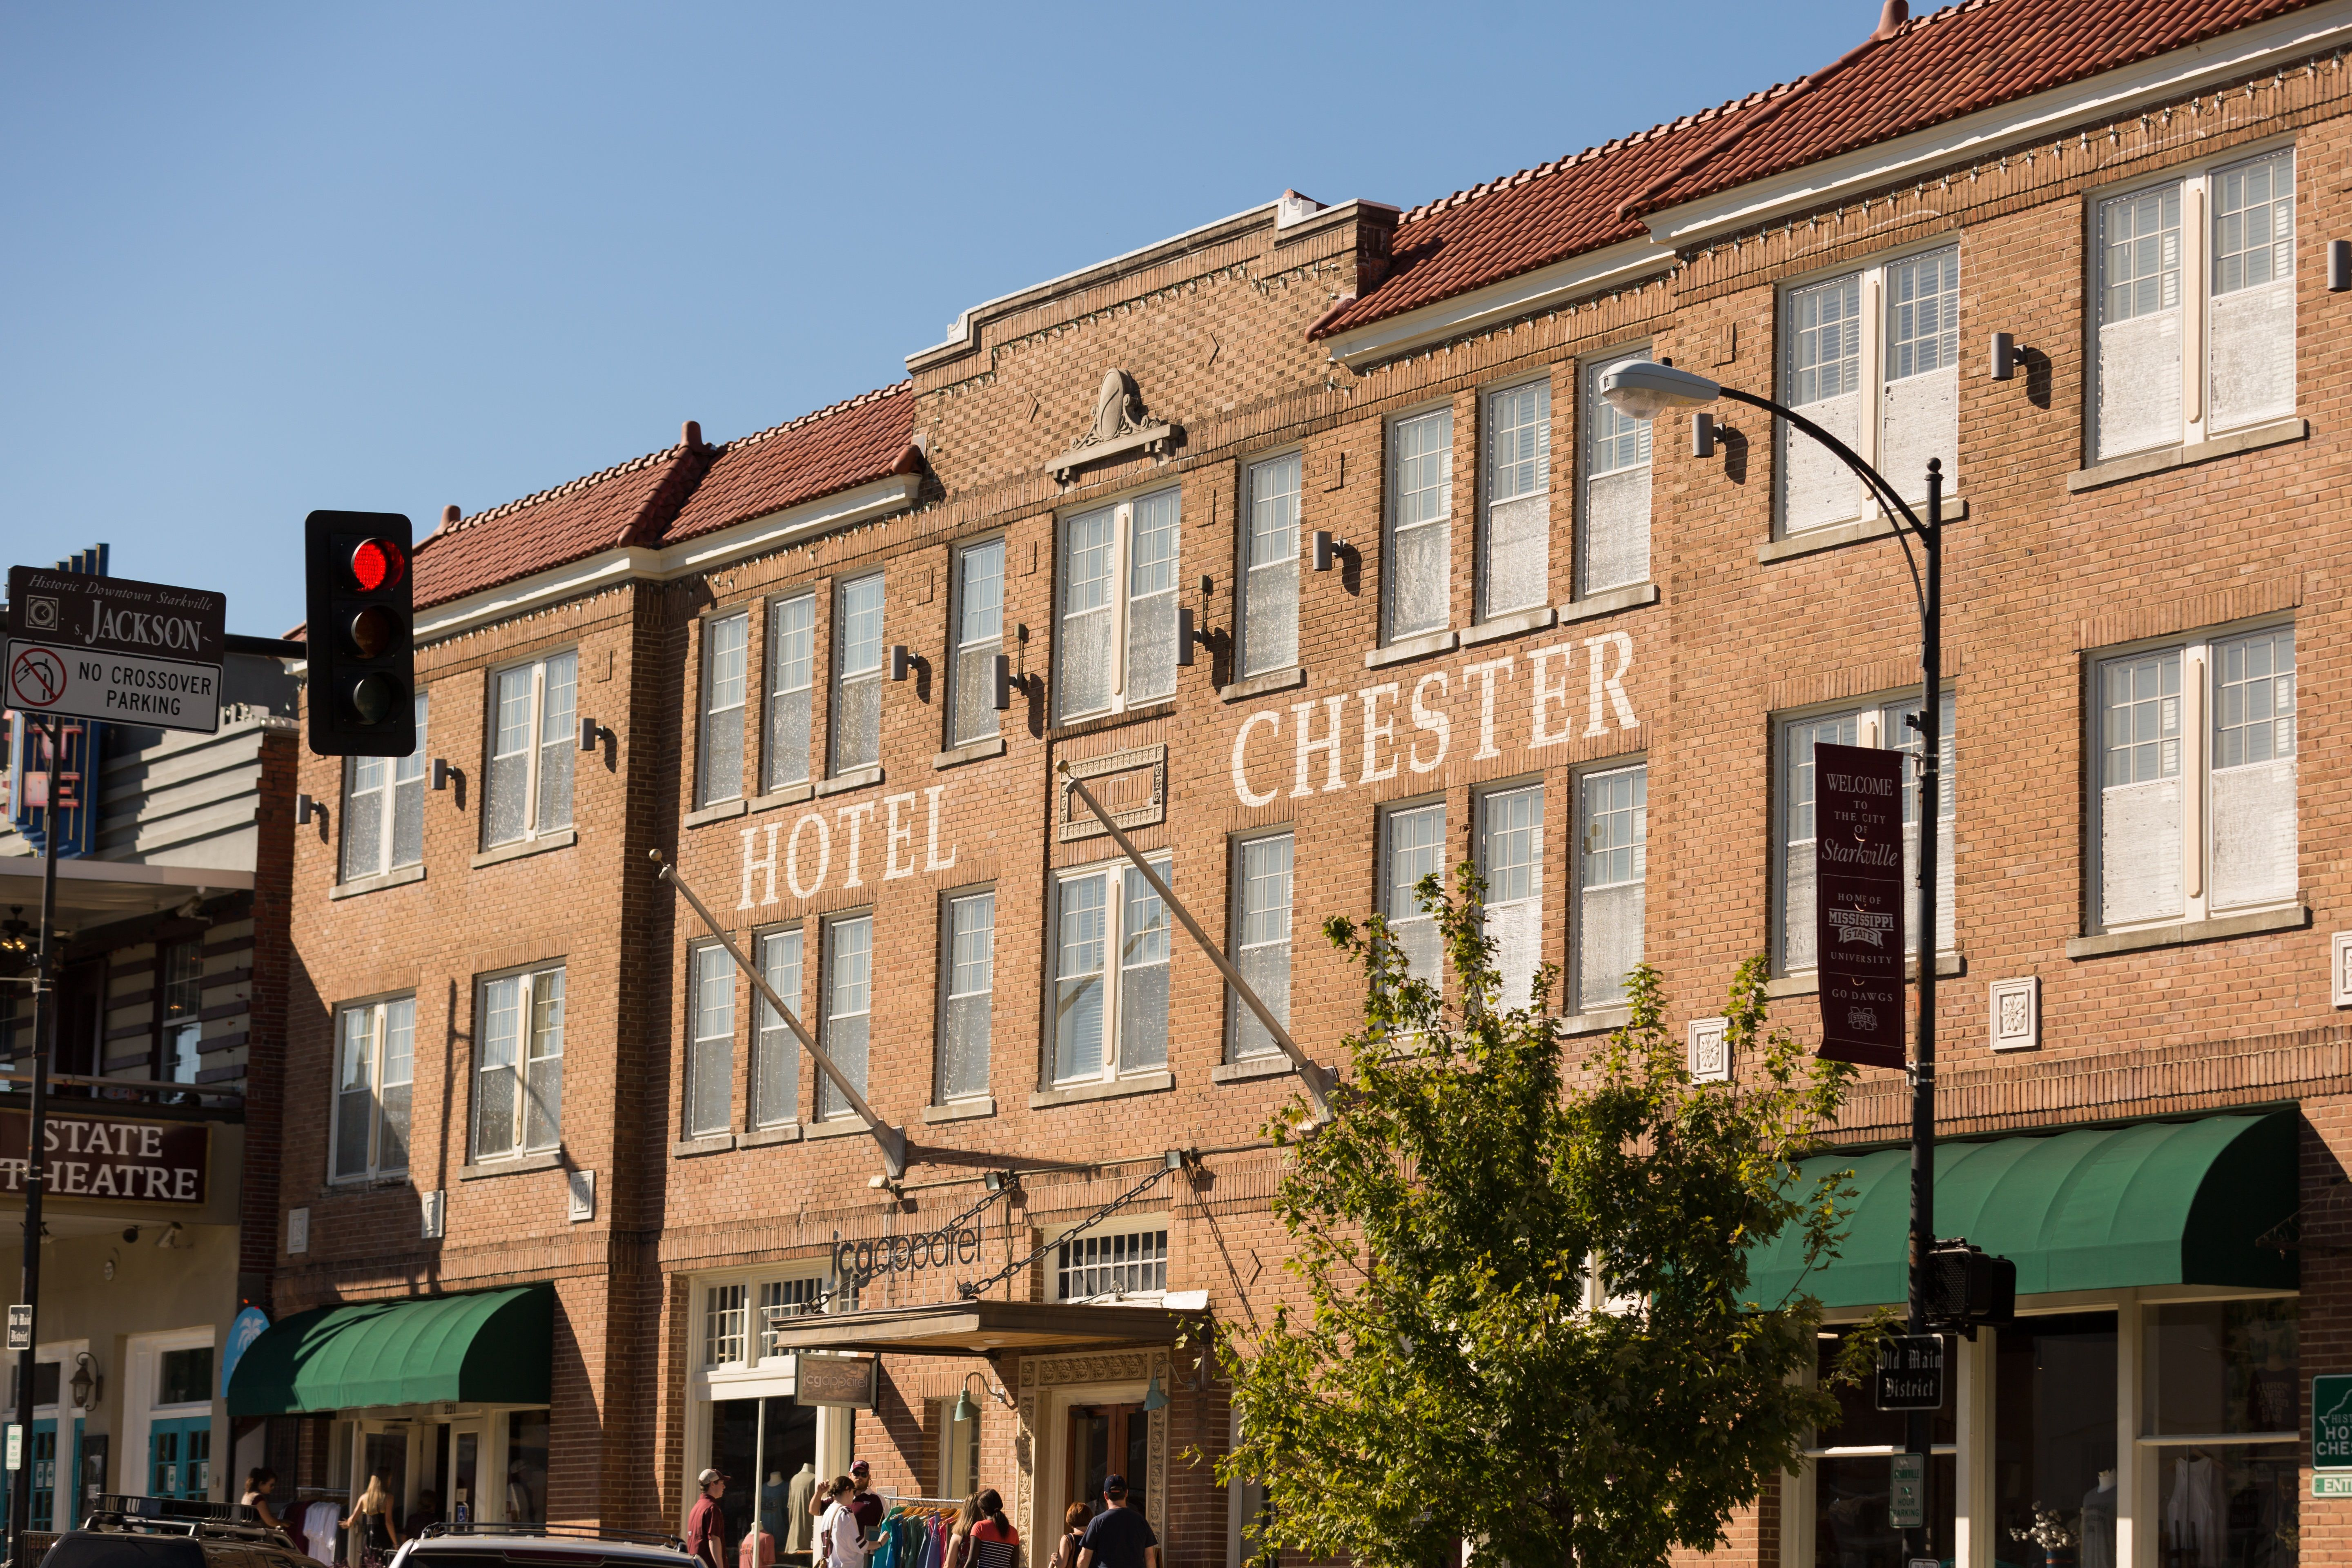 Located in historic downtown Starkville, Hotel Chester combines ...